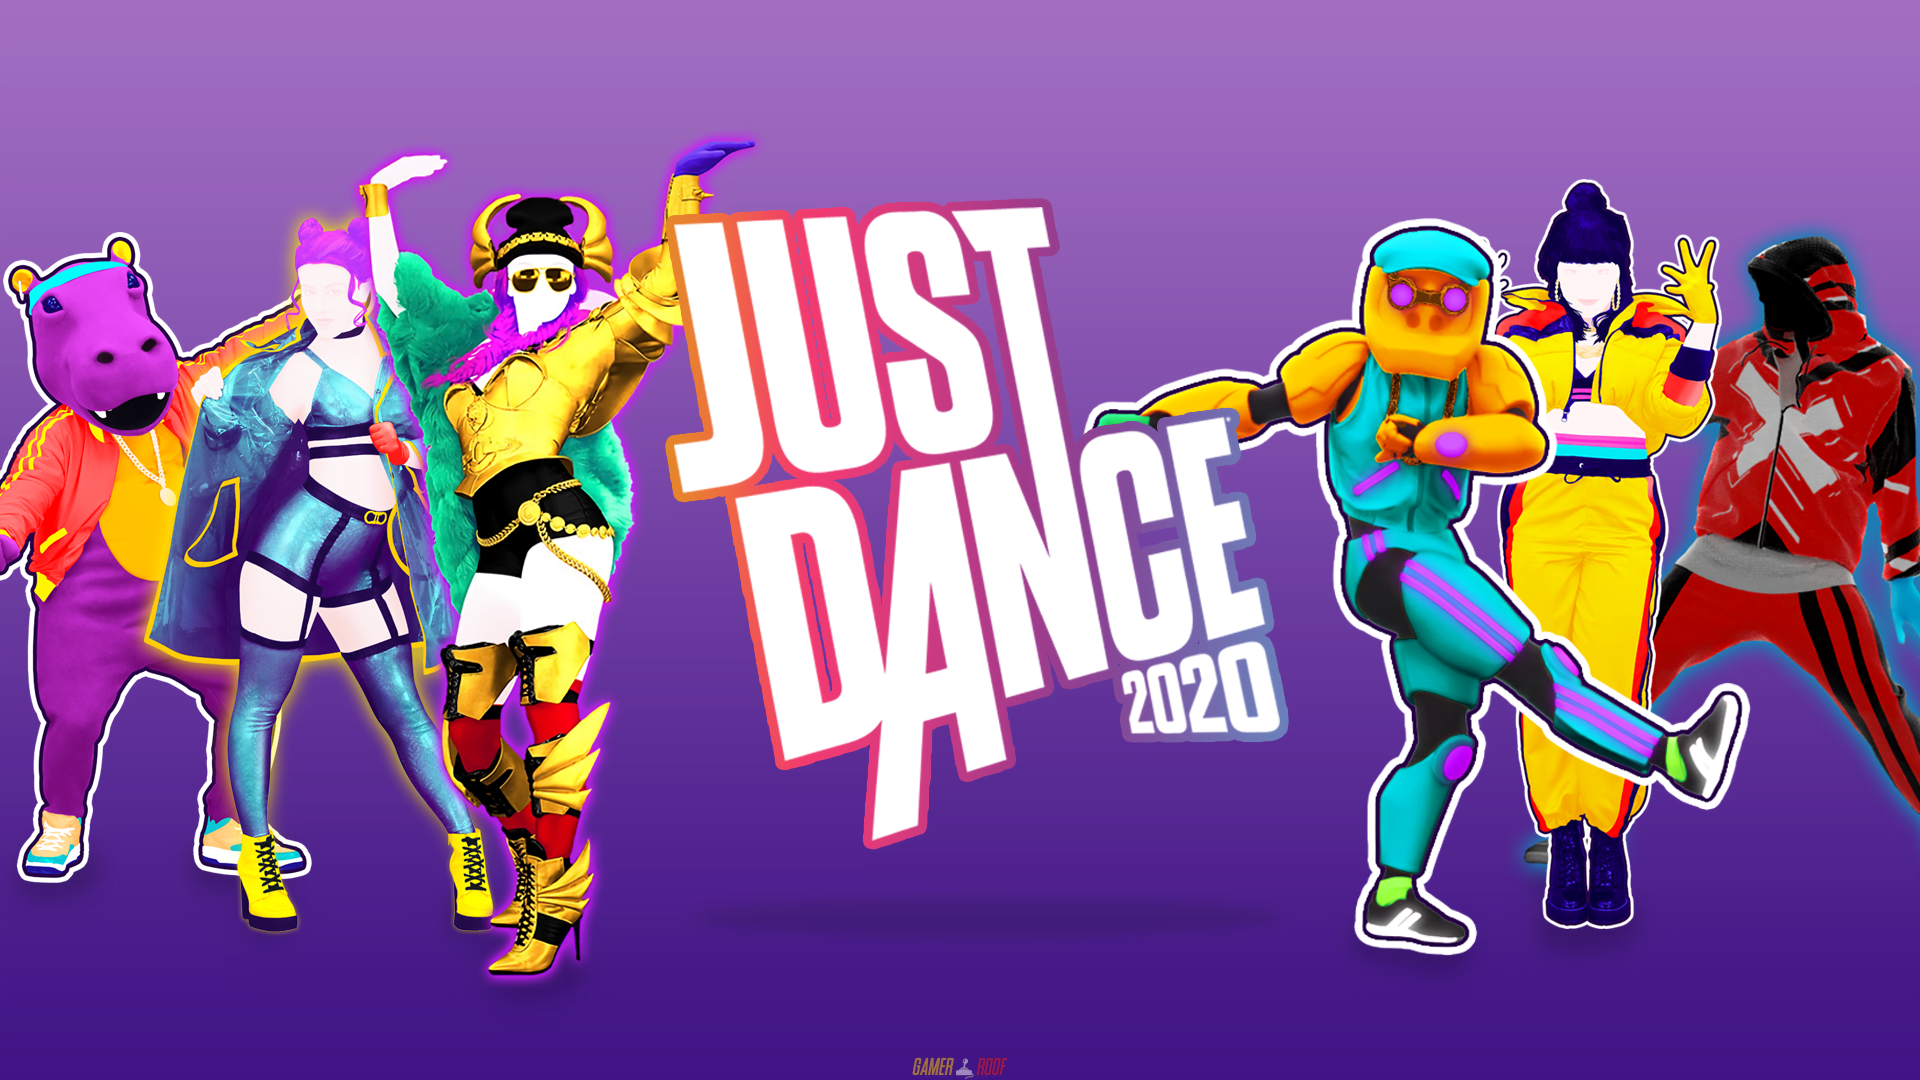 Just Dance 2020 PS4 Full Version Download Best New Game 1920x1080